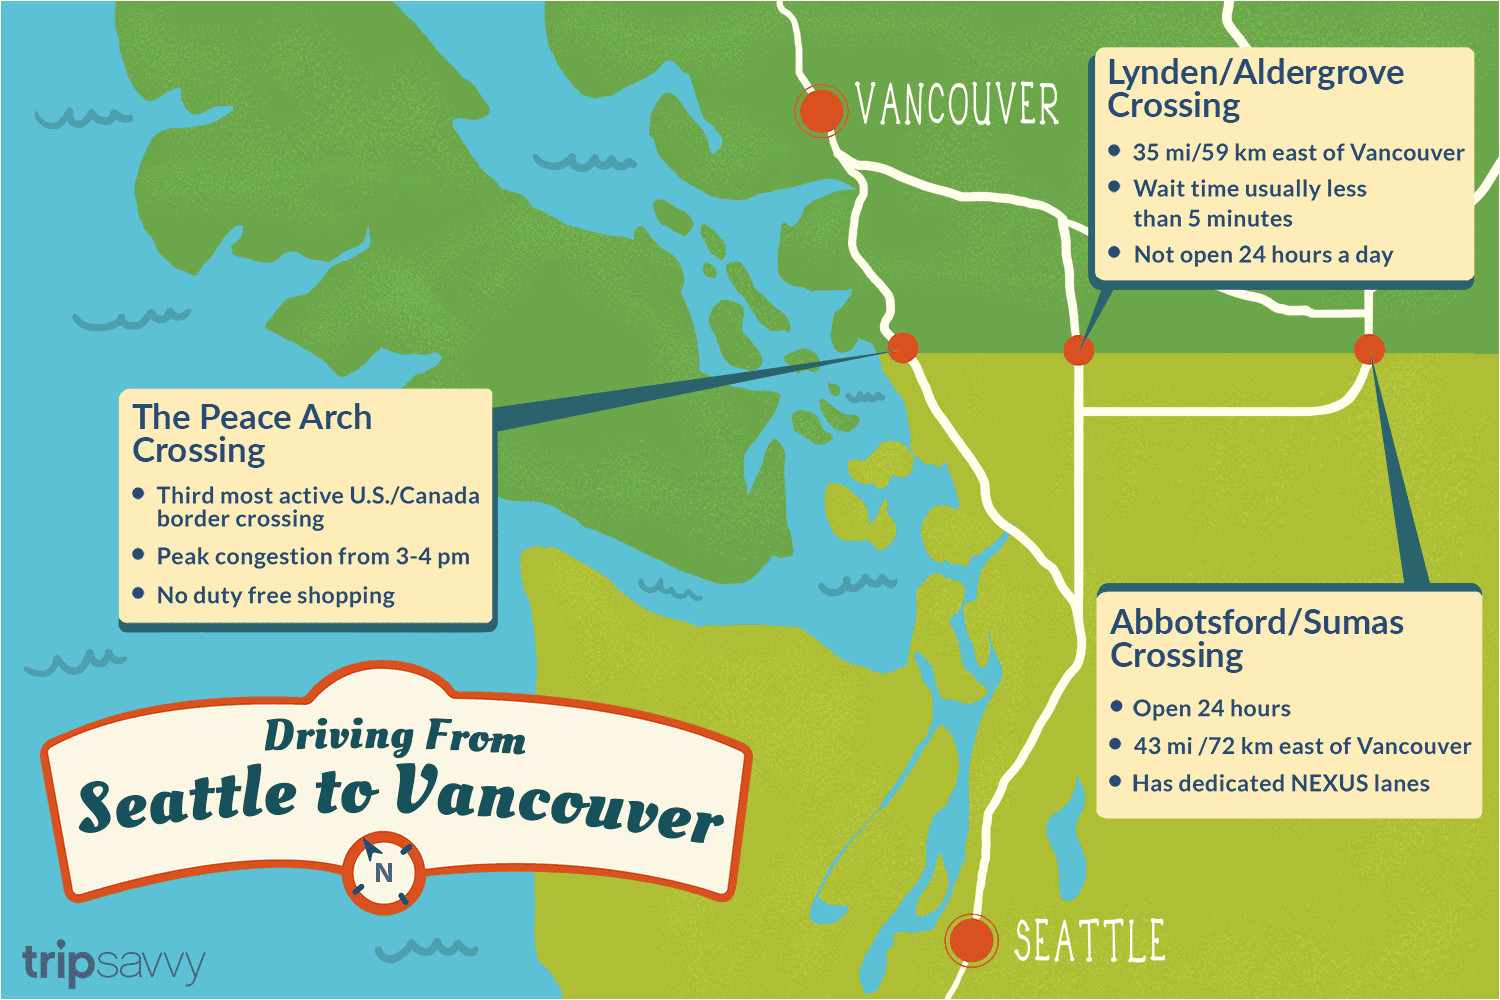 seattle to vancouver border crossings 1481637 final ac 5c4f26dc4cedfd0001ddb567 png